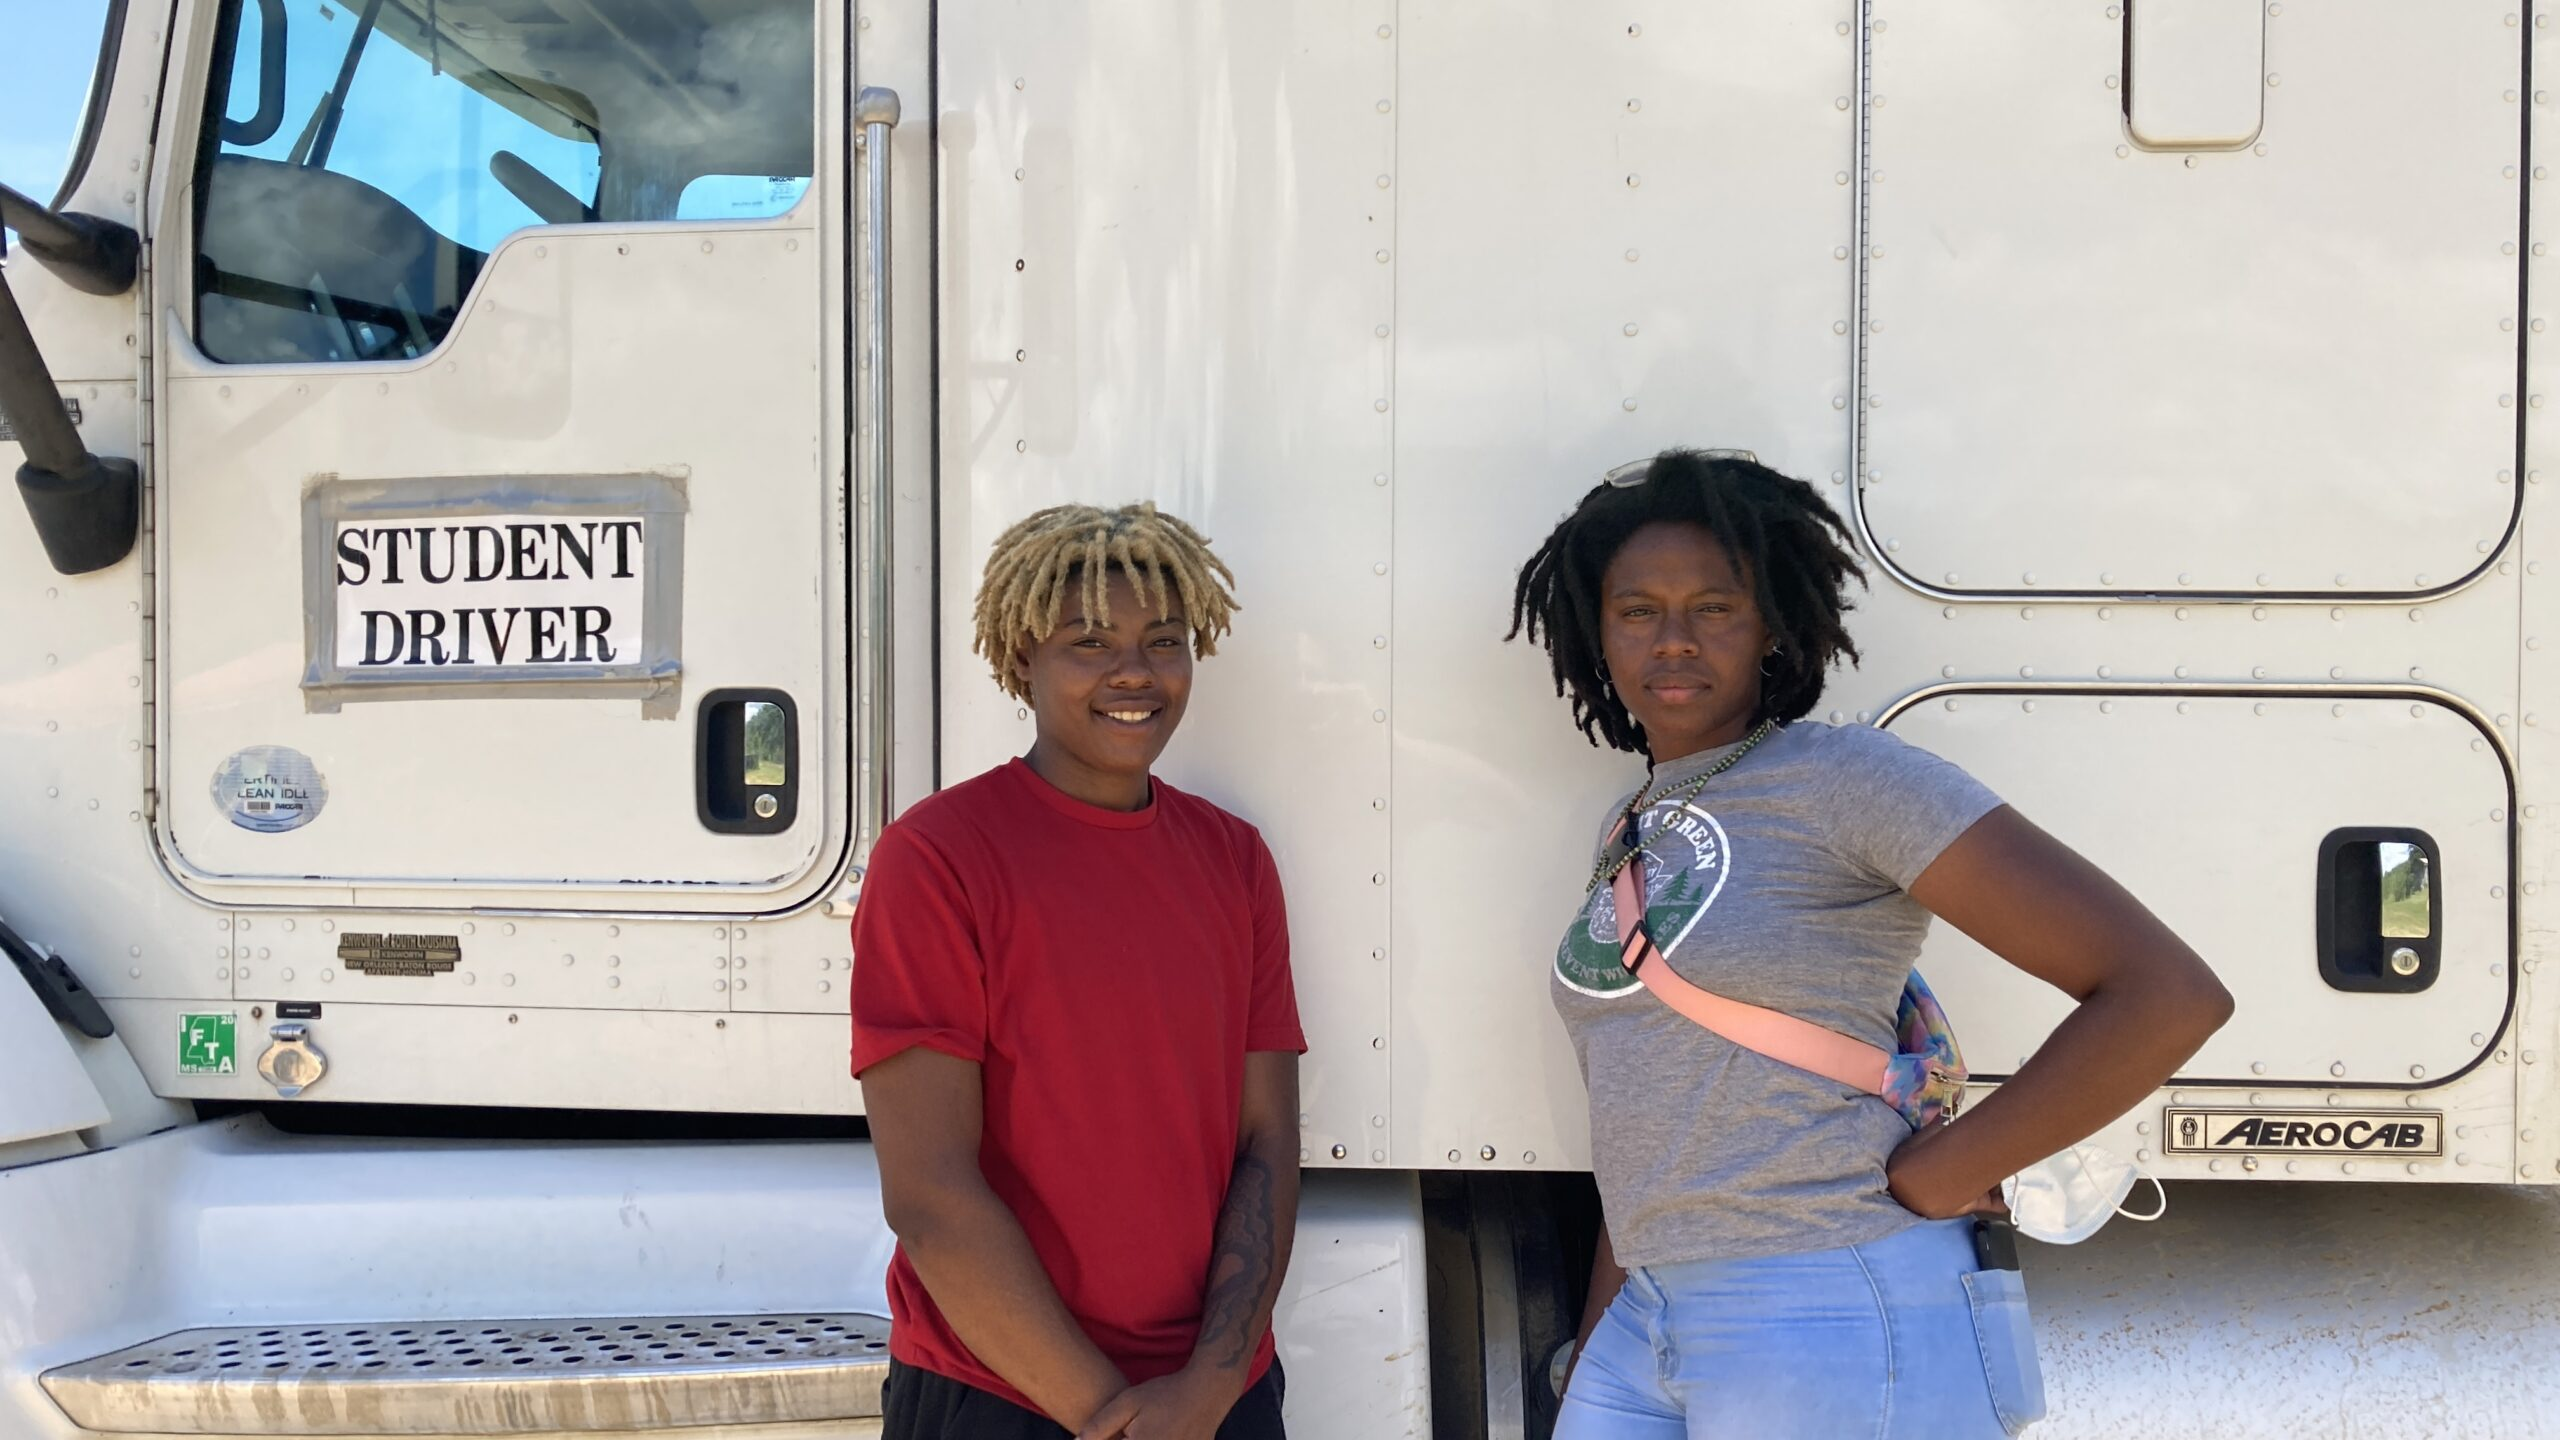 Diamond Herring and Amalya Livingston are enrolled in truck driving classes at DSC Training Academy. June 29, 2021